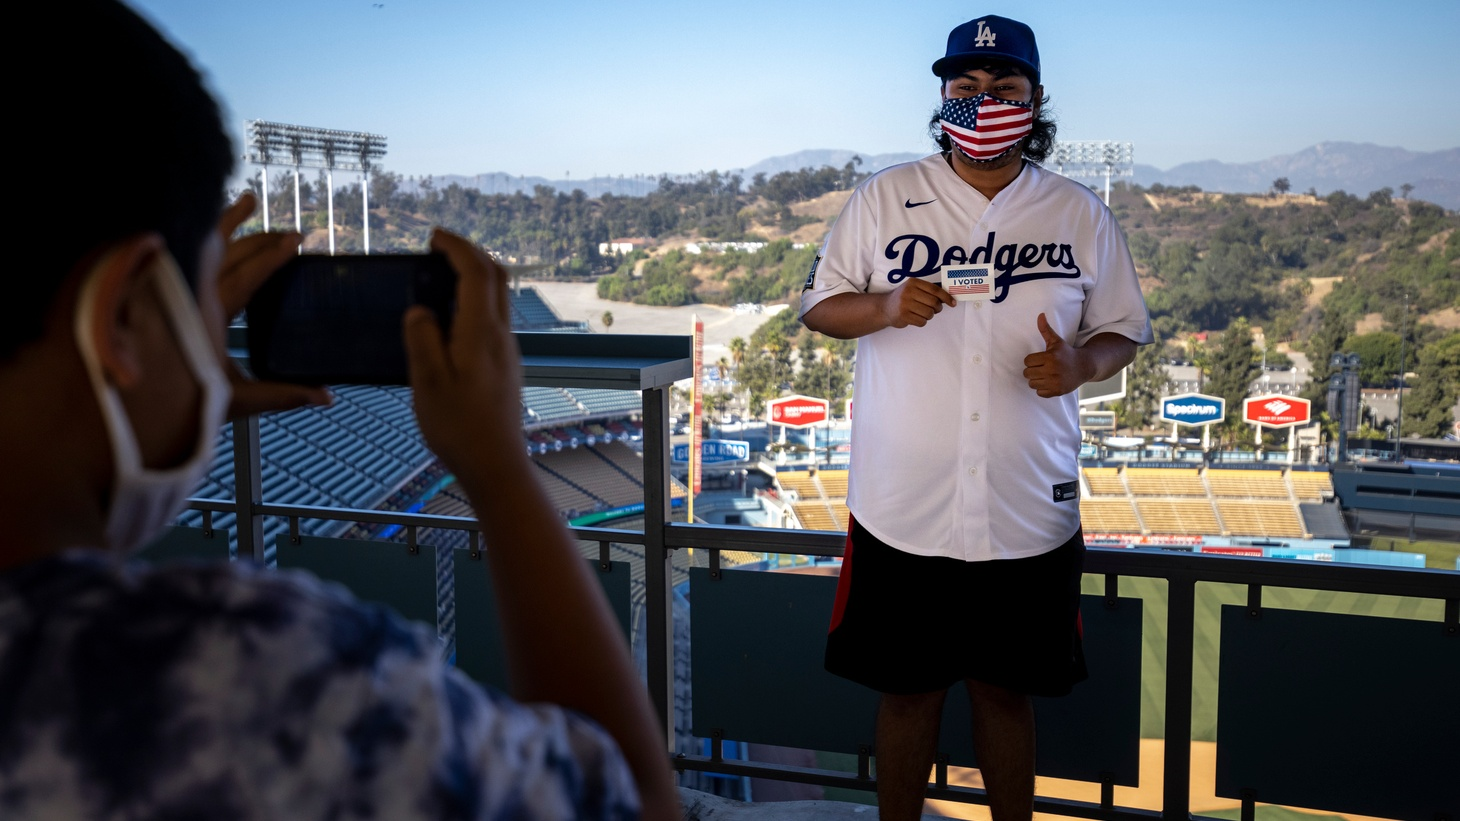 A voter poses for a photo after casting a ballots at Dodgers Stadium's voting center.